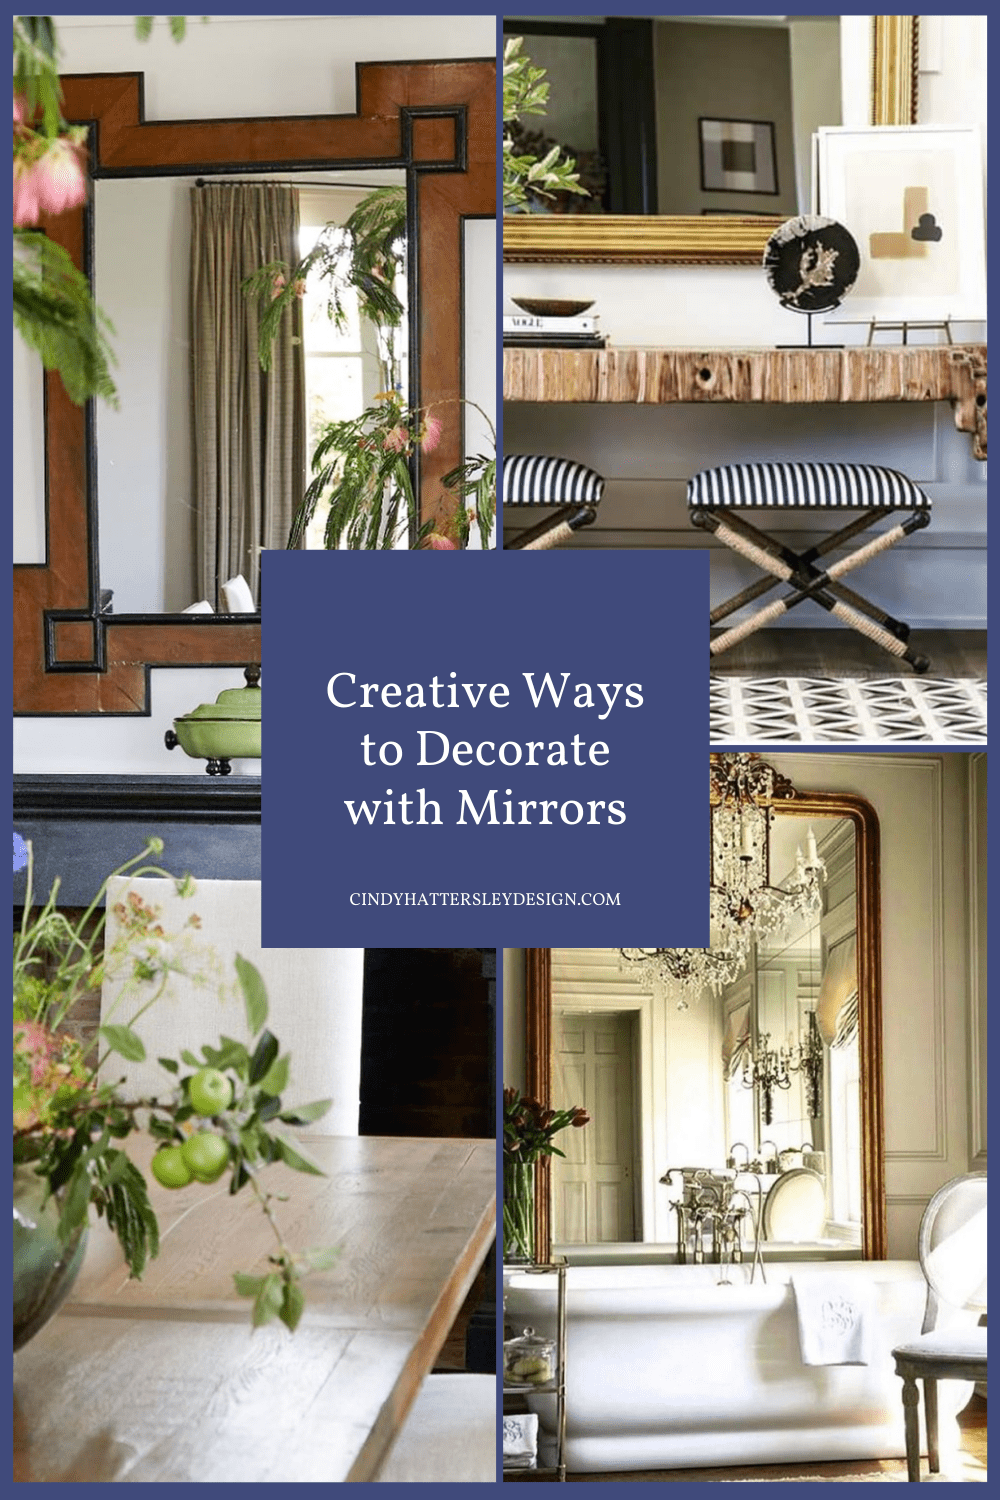 Creative Ways to Decorate with Mirrors